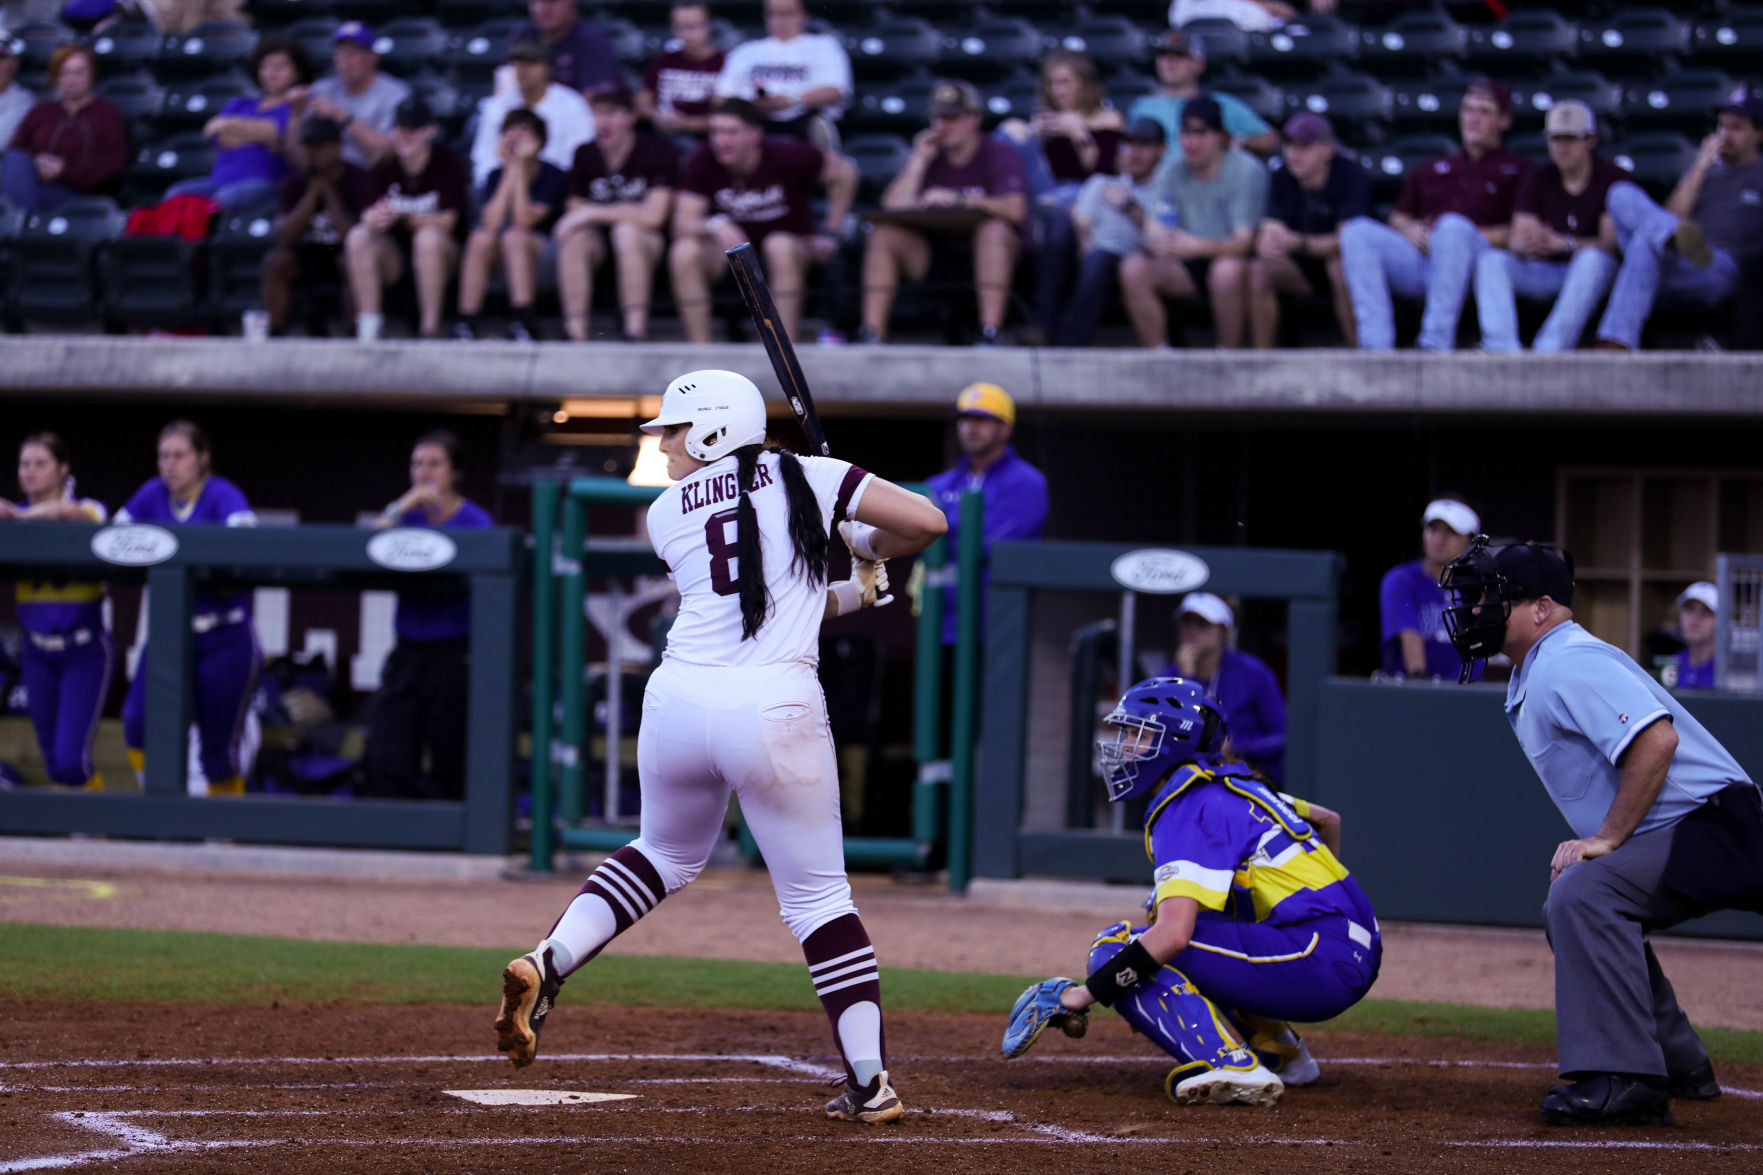 Garage Games Invitational Texas A M Softball Team Splits First Two Games At Home